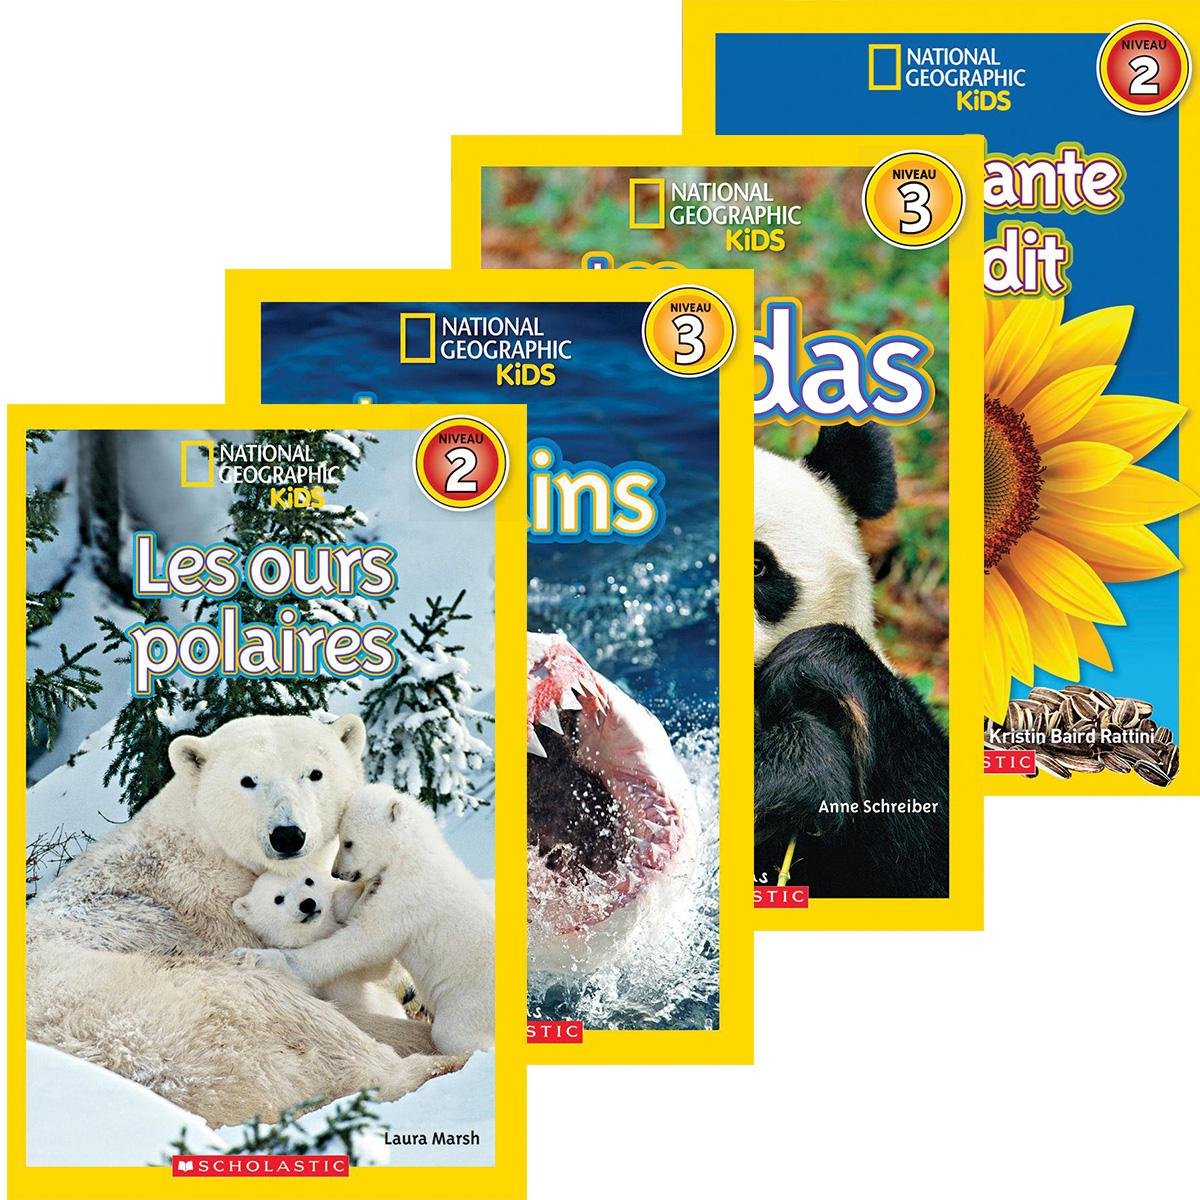 French National Geographic Kids Value Pack